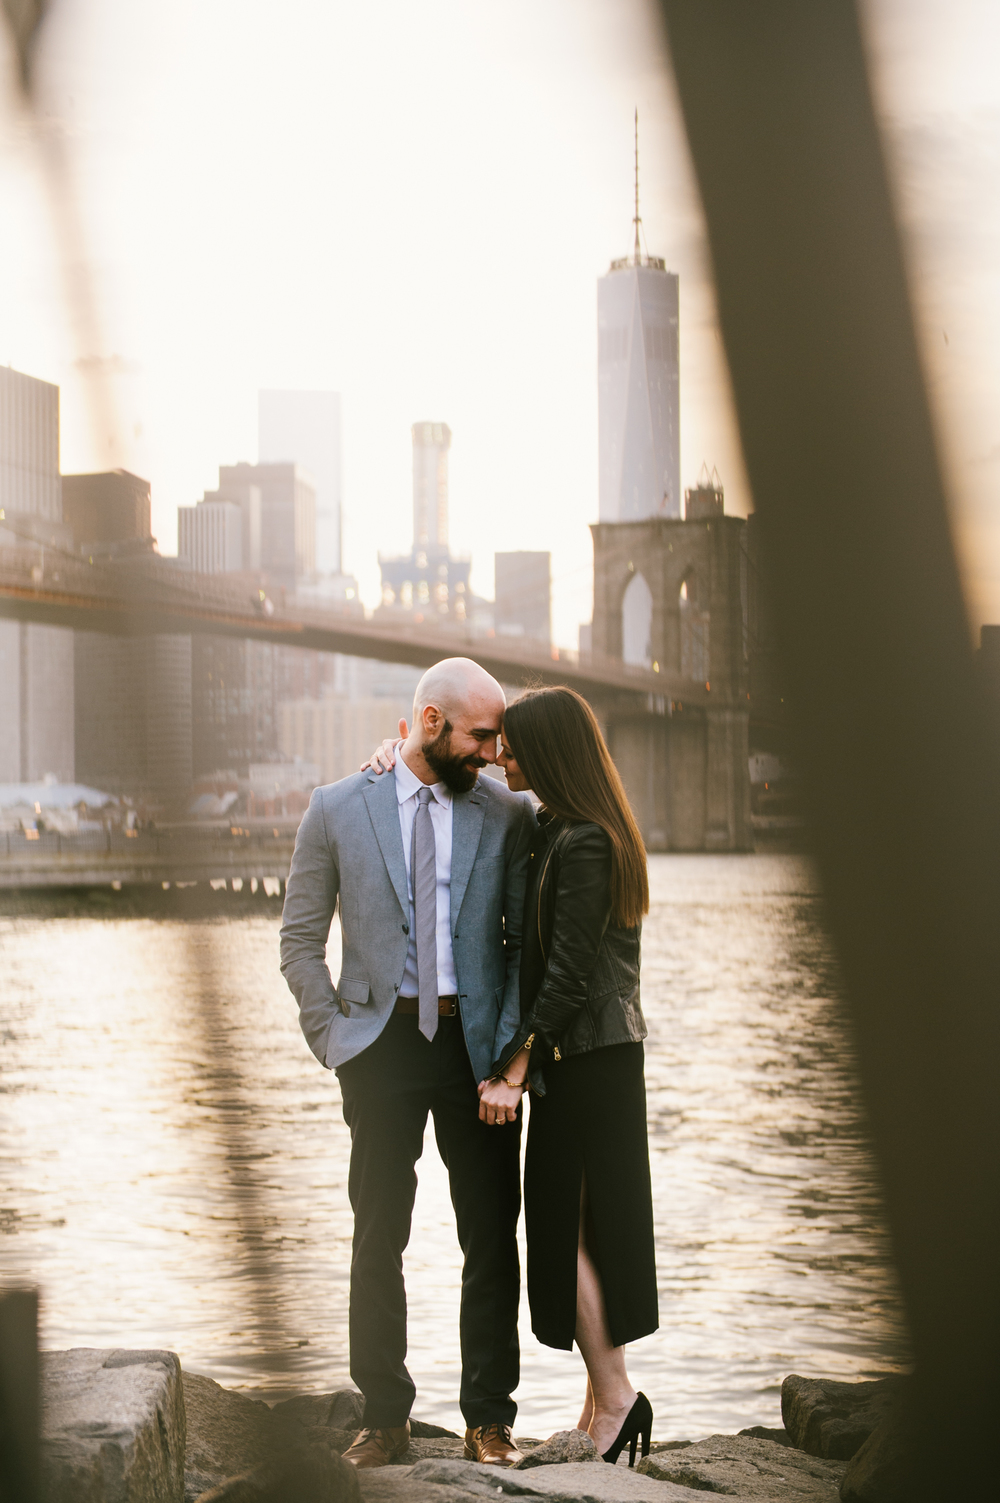 Dumbo.BrooklynBridge.Engagements.Proposal.DMB11.jpg